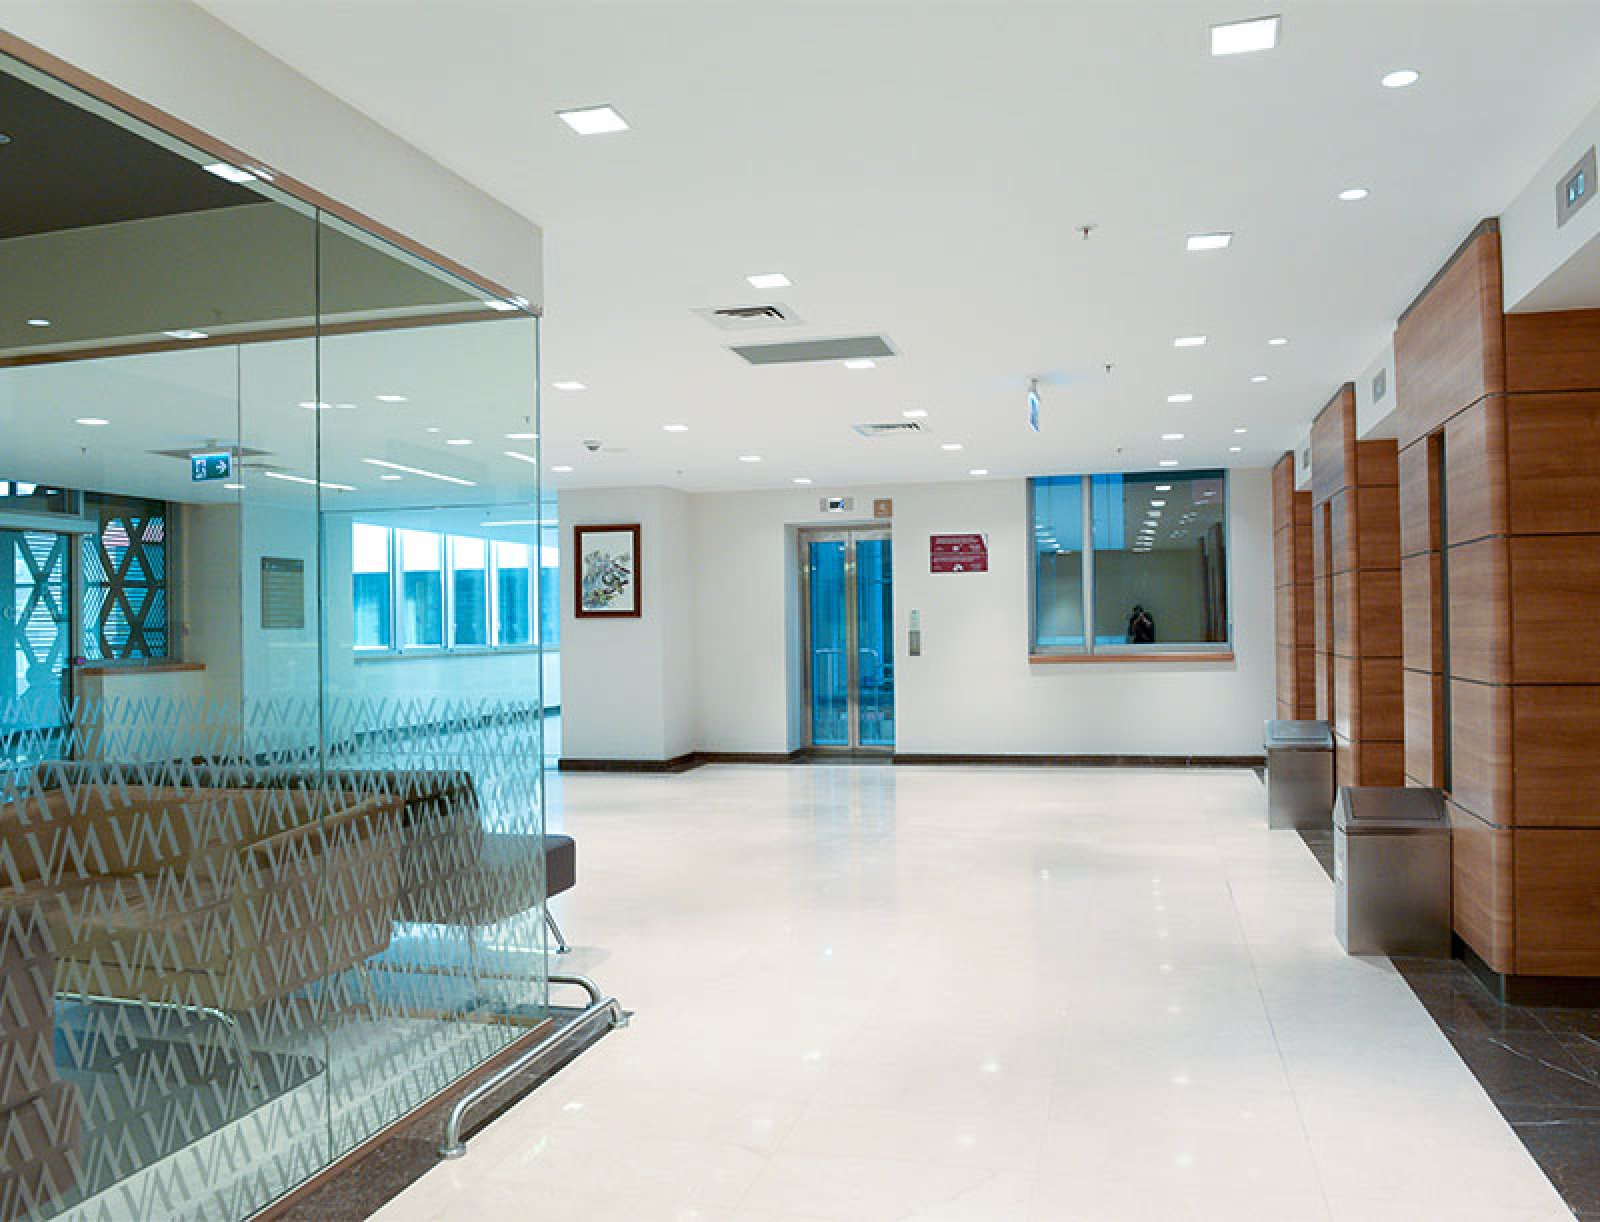 Samsun Medical Park HospitalSamsun Medical Park Hospital